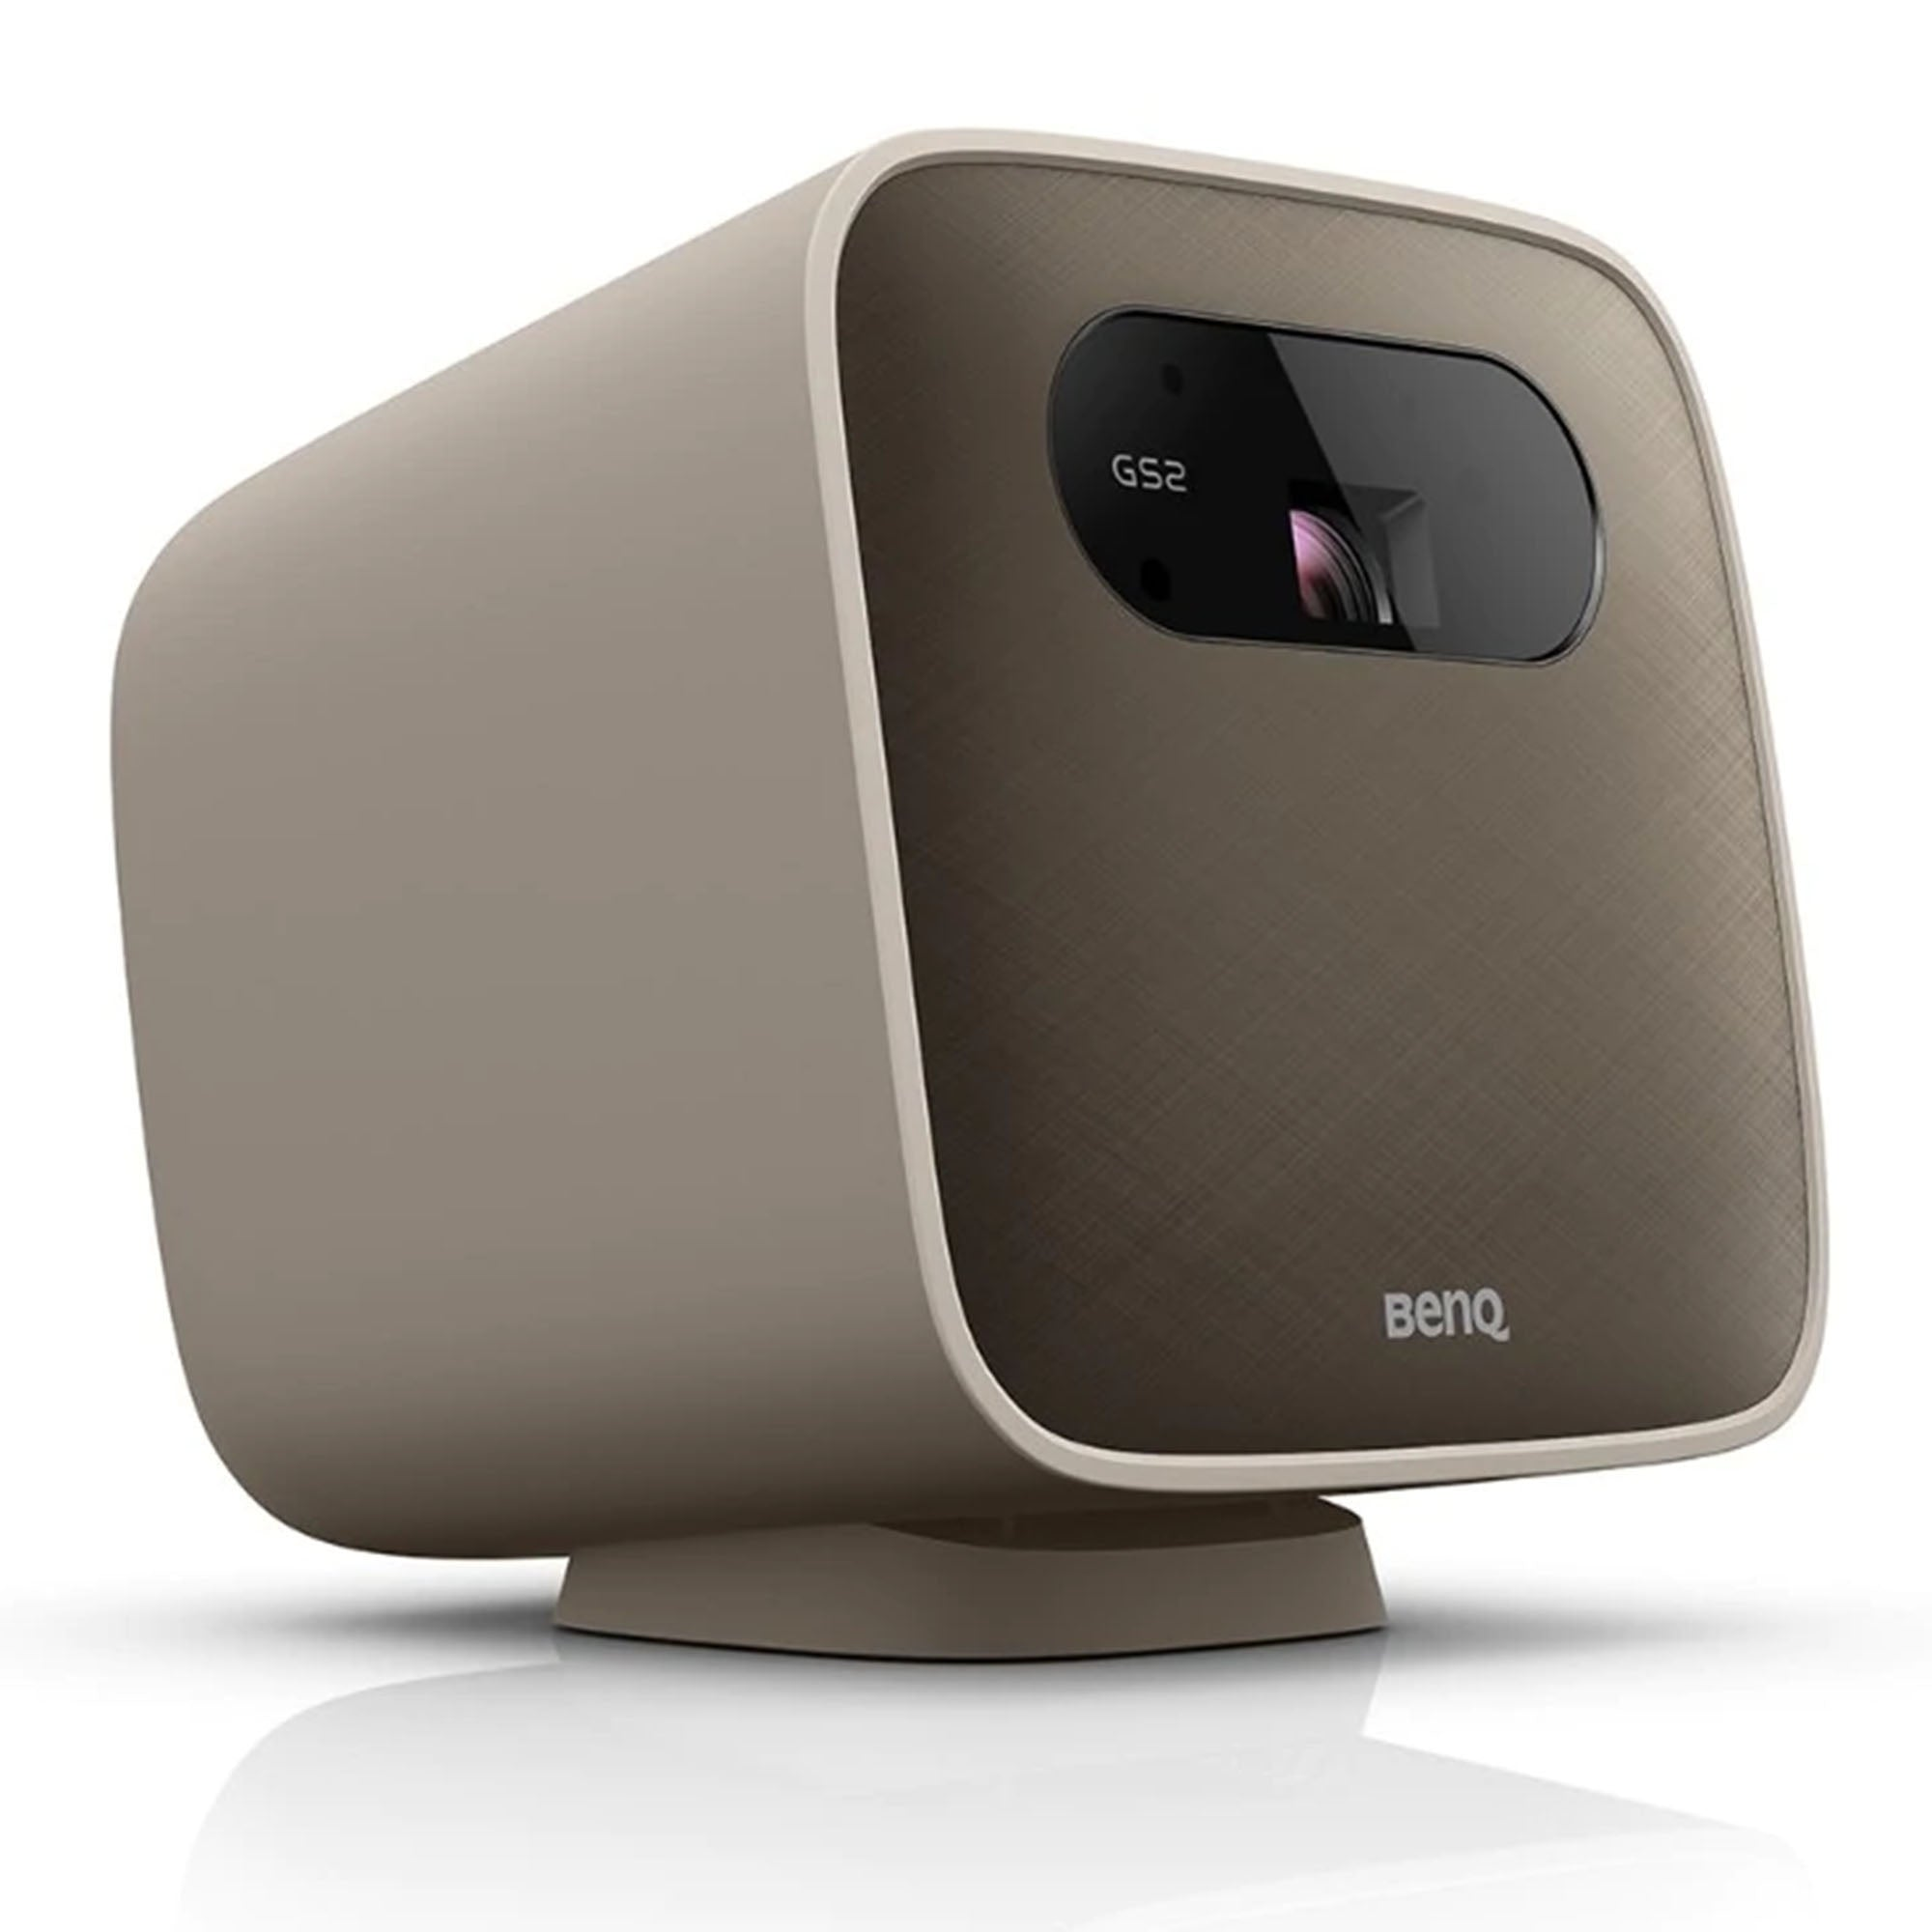 BenQ GS2 LED Portable Projector